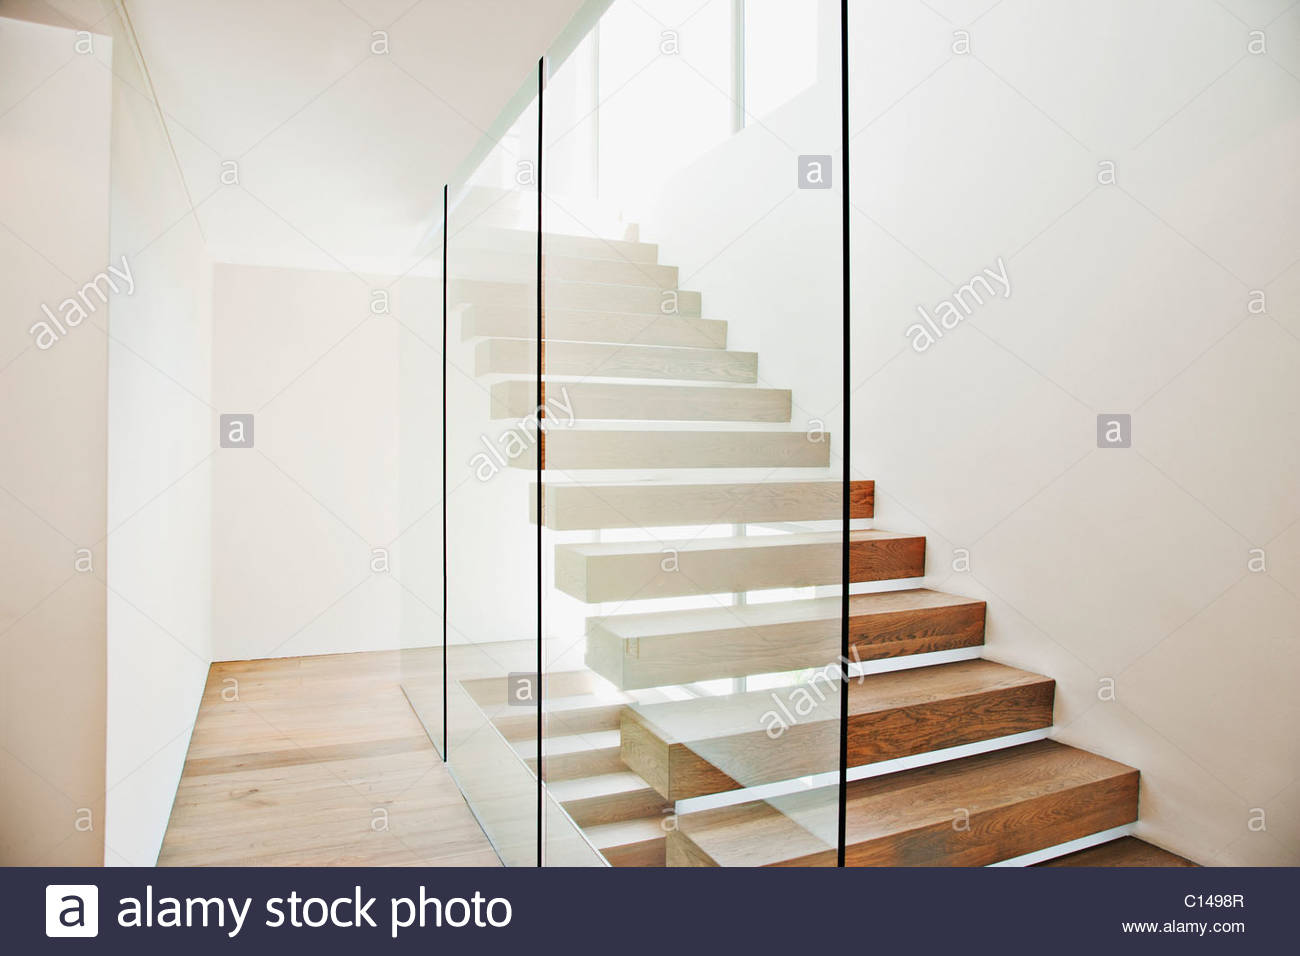 schwebende treppe und glas w nde in modernen haus stockfoto bild 35130503 alamy. Black Bedroom Furniture Sets. Home Design Ideas